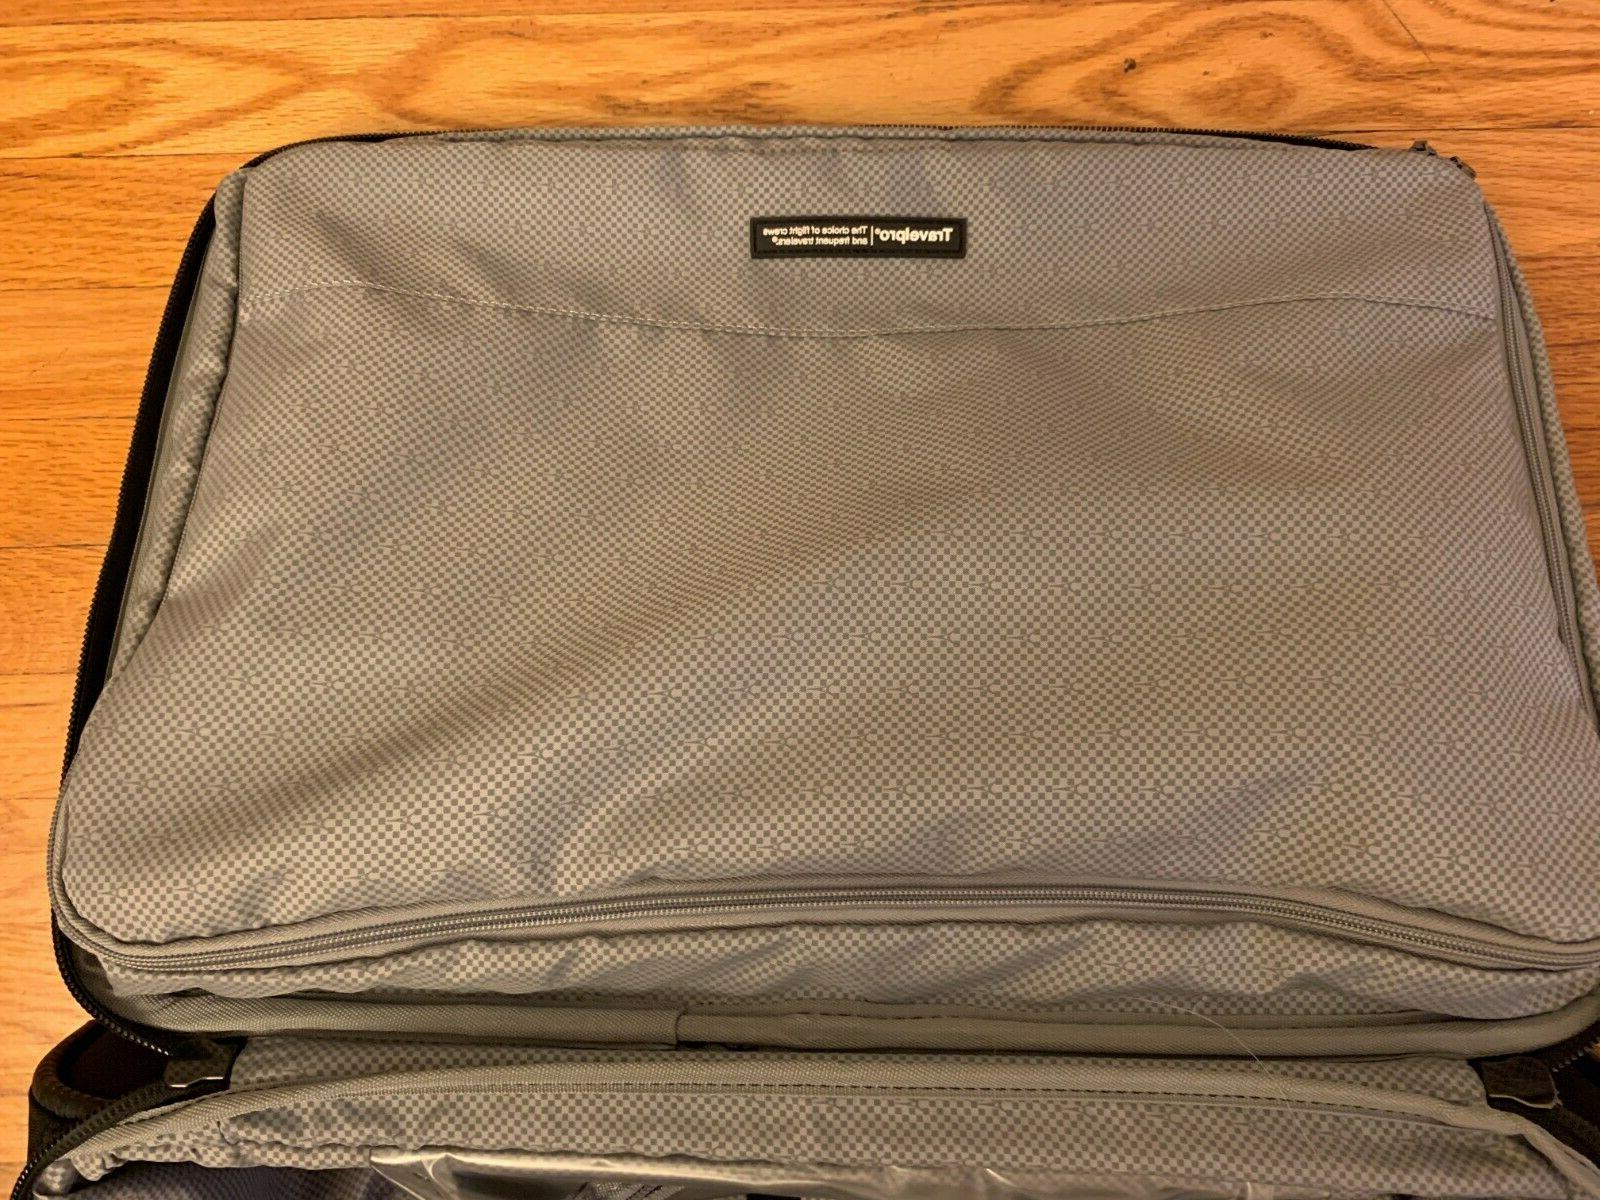 Brand Crew 10, Rollaboard Carry-on